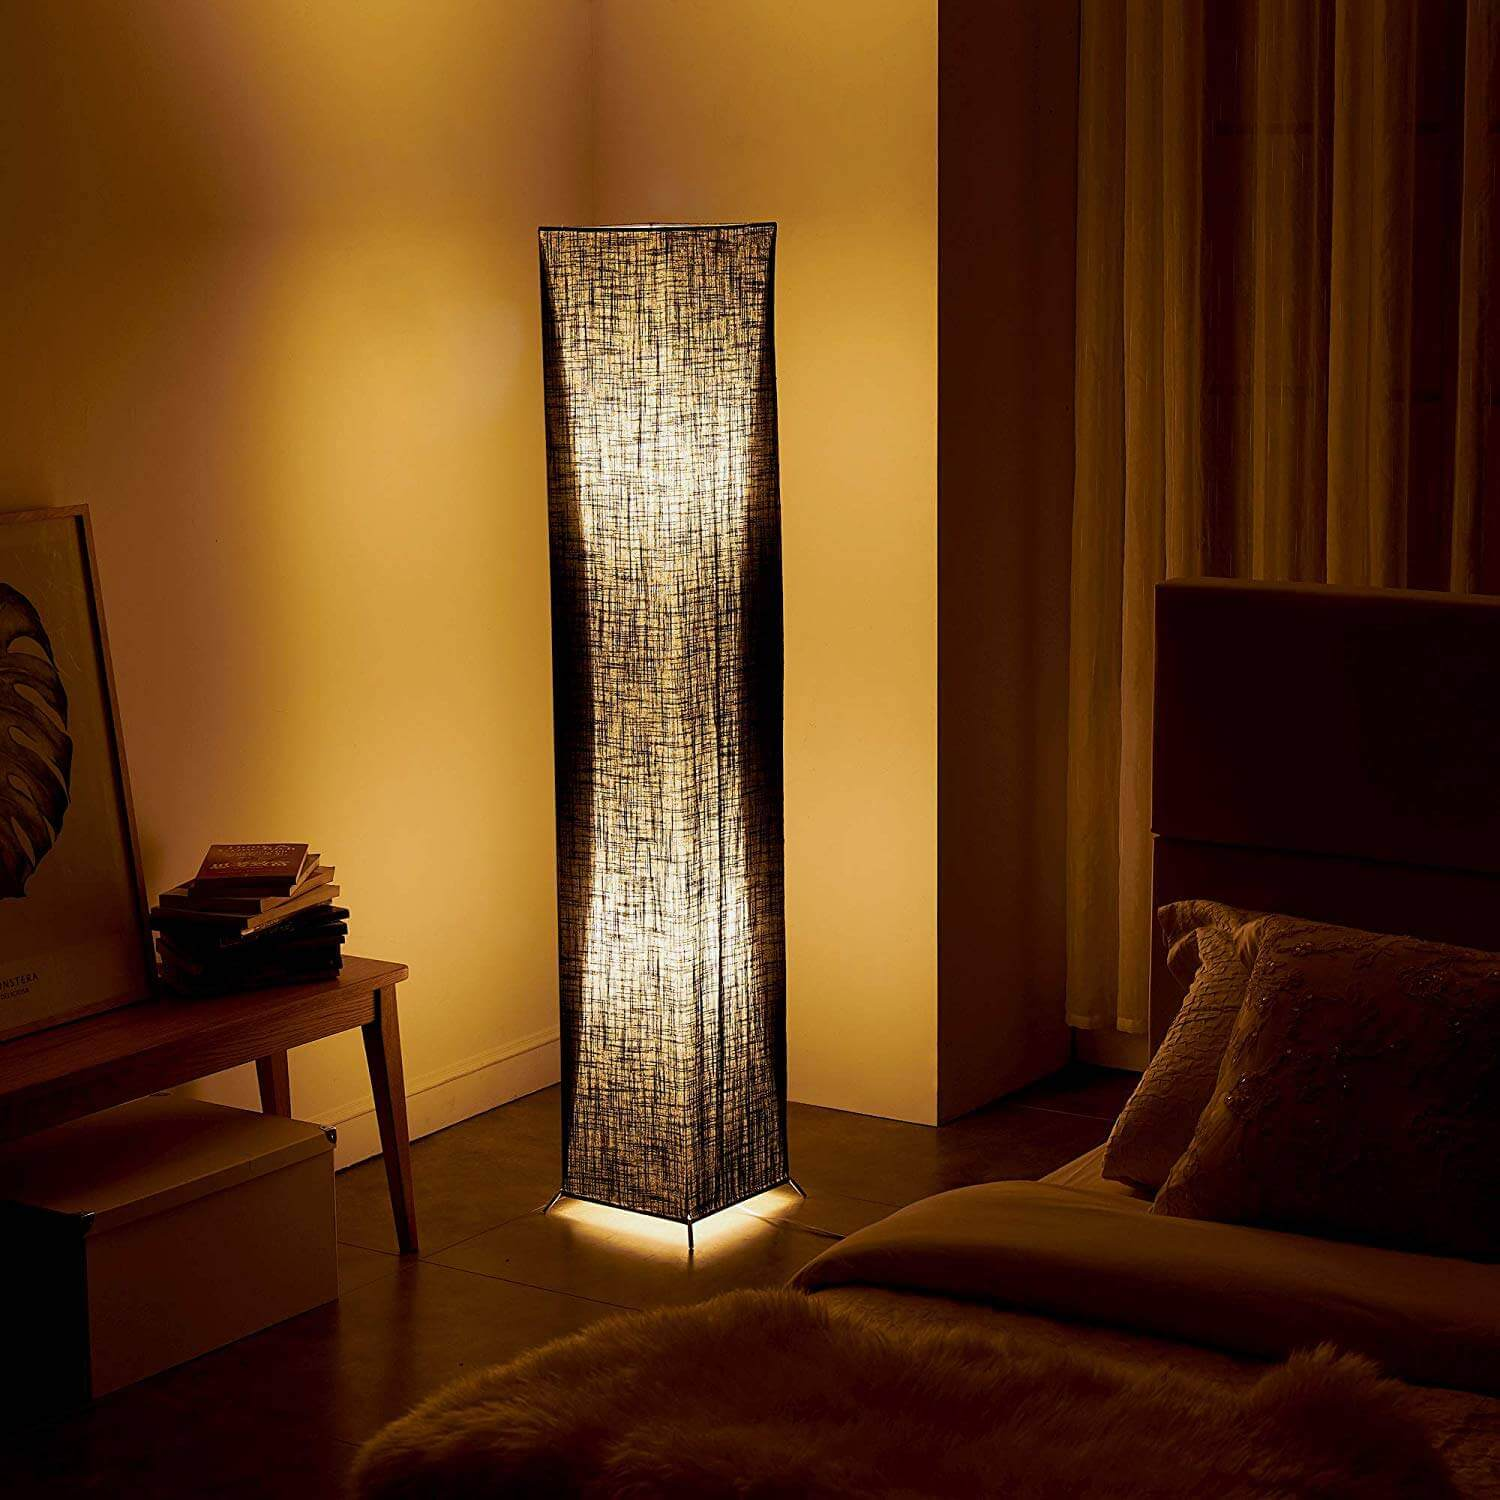 dimmable reading light